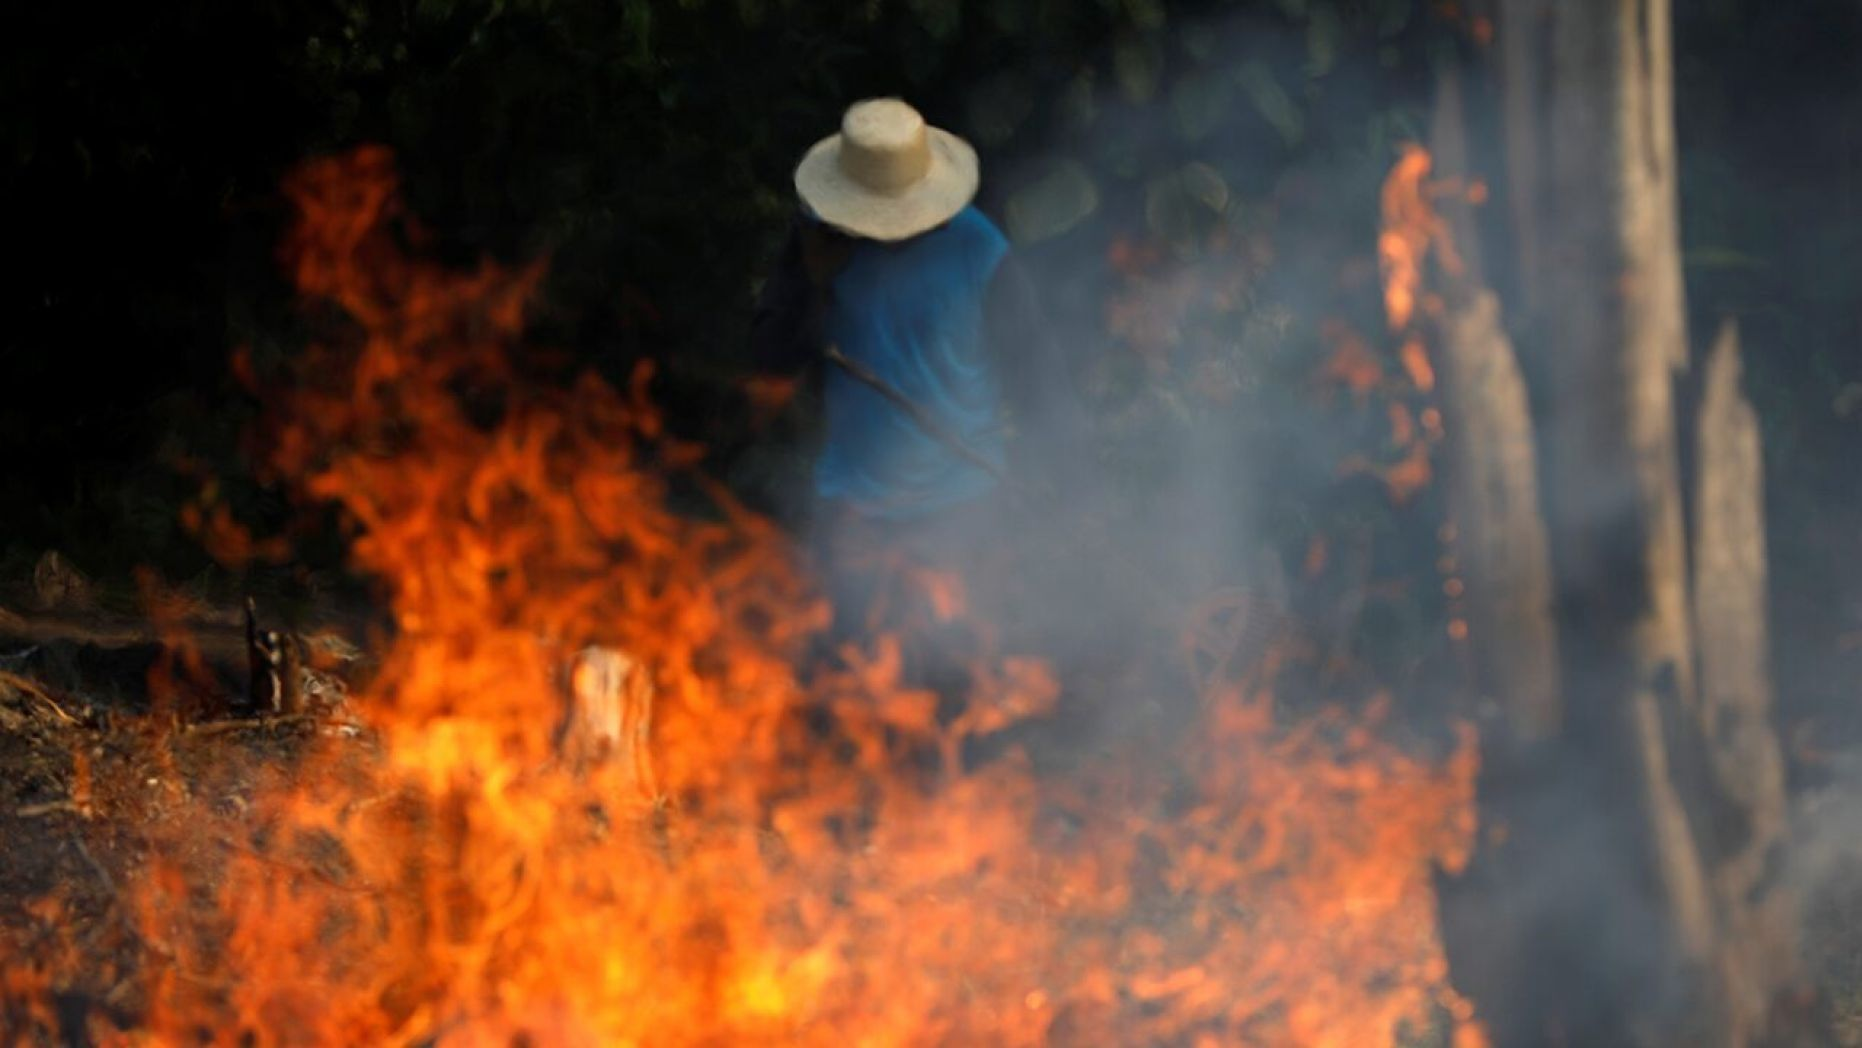 These Photos Show the Devastation Taking Place in the Amazon Rainforest